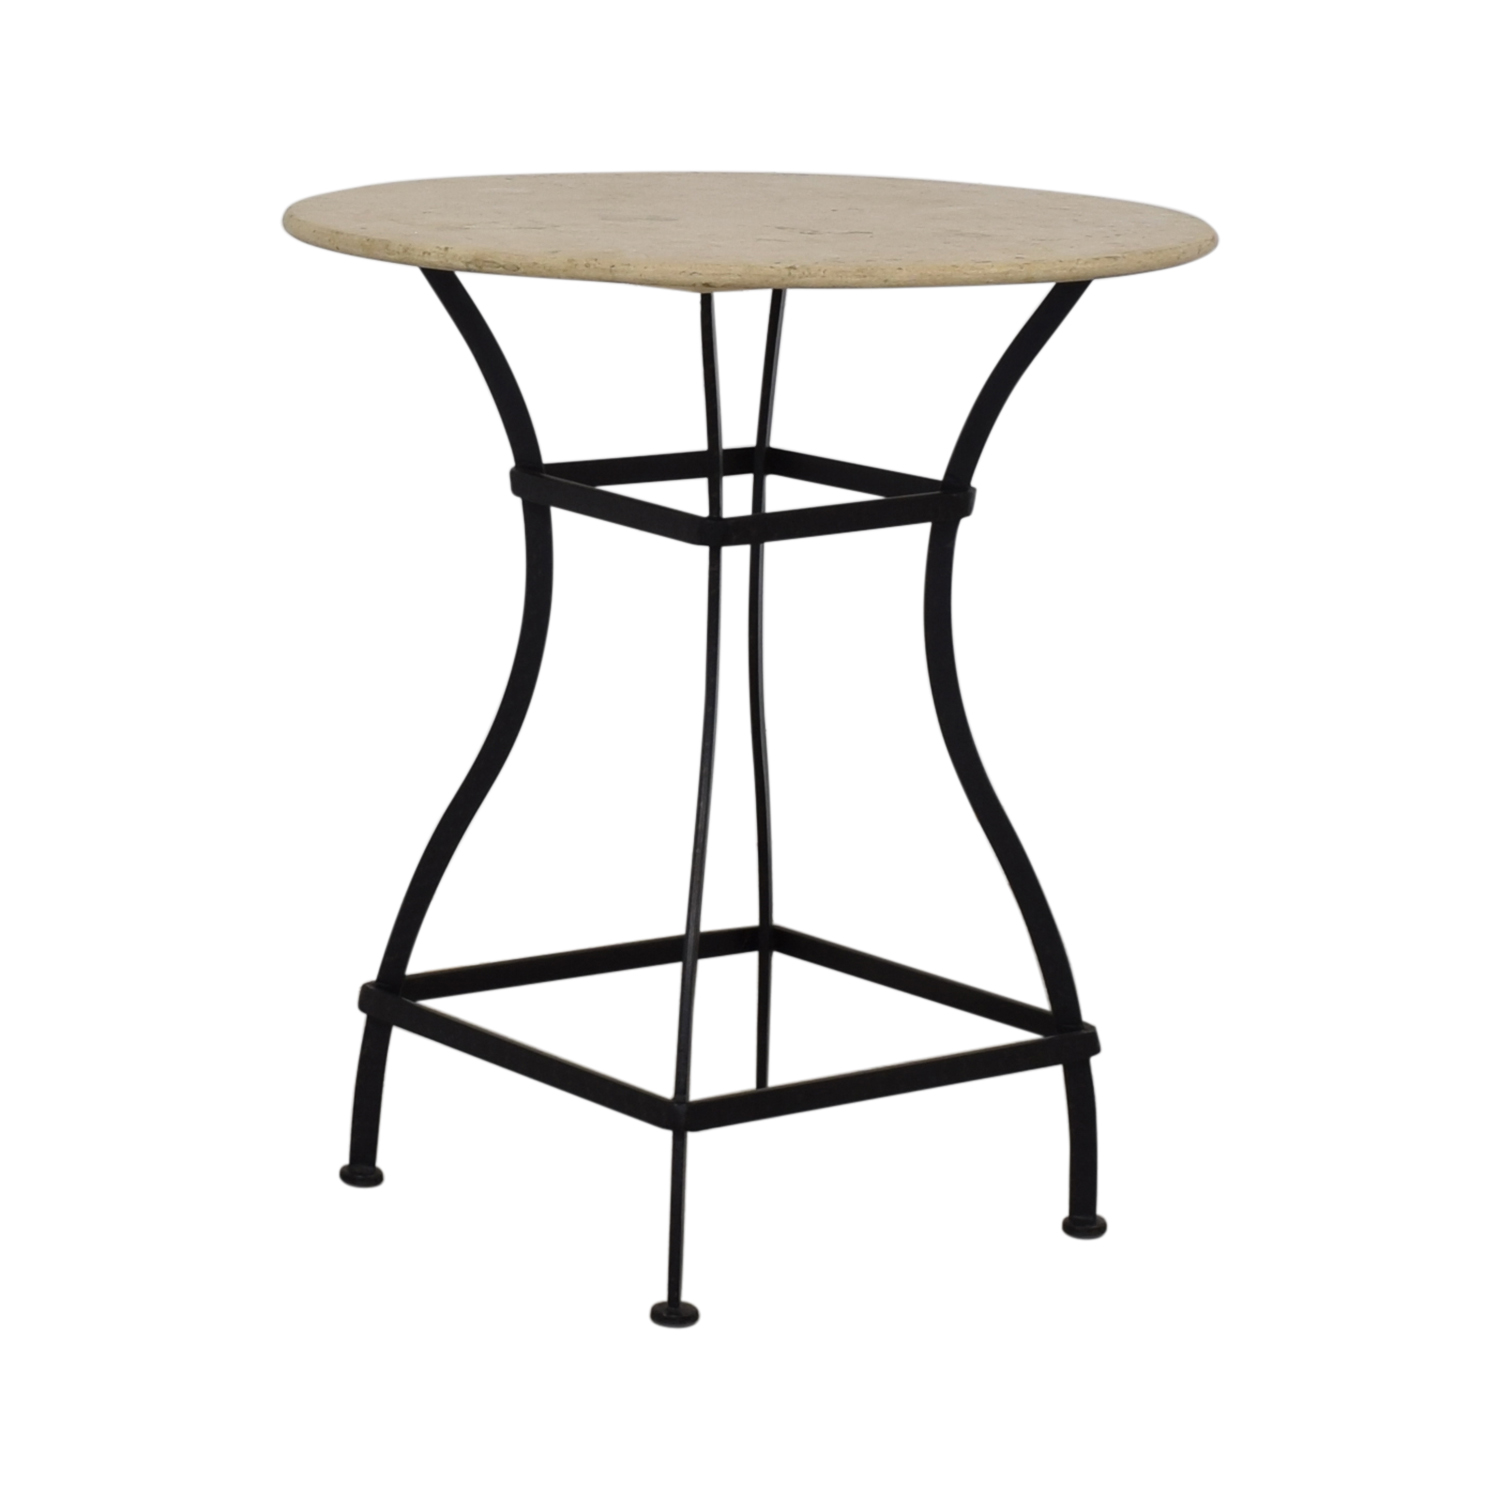 Crate & Barrel Crate & Barrel Bistro Table